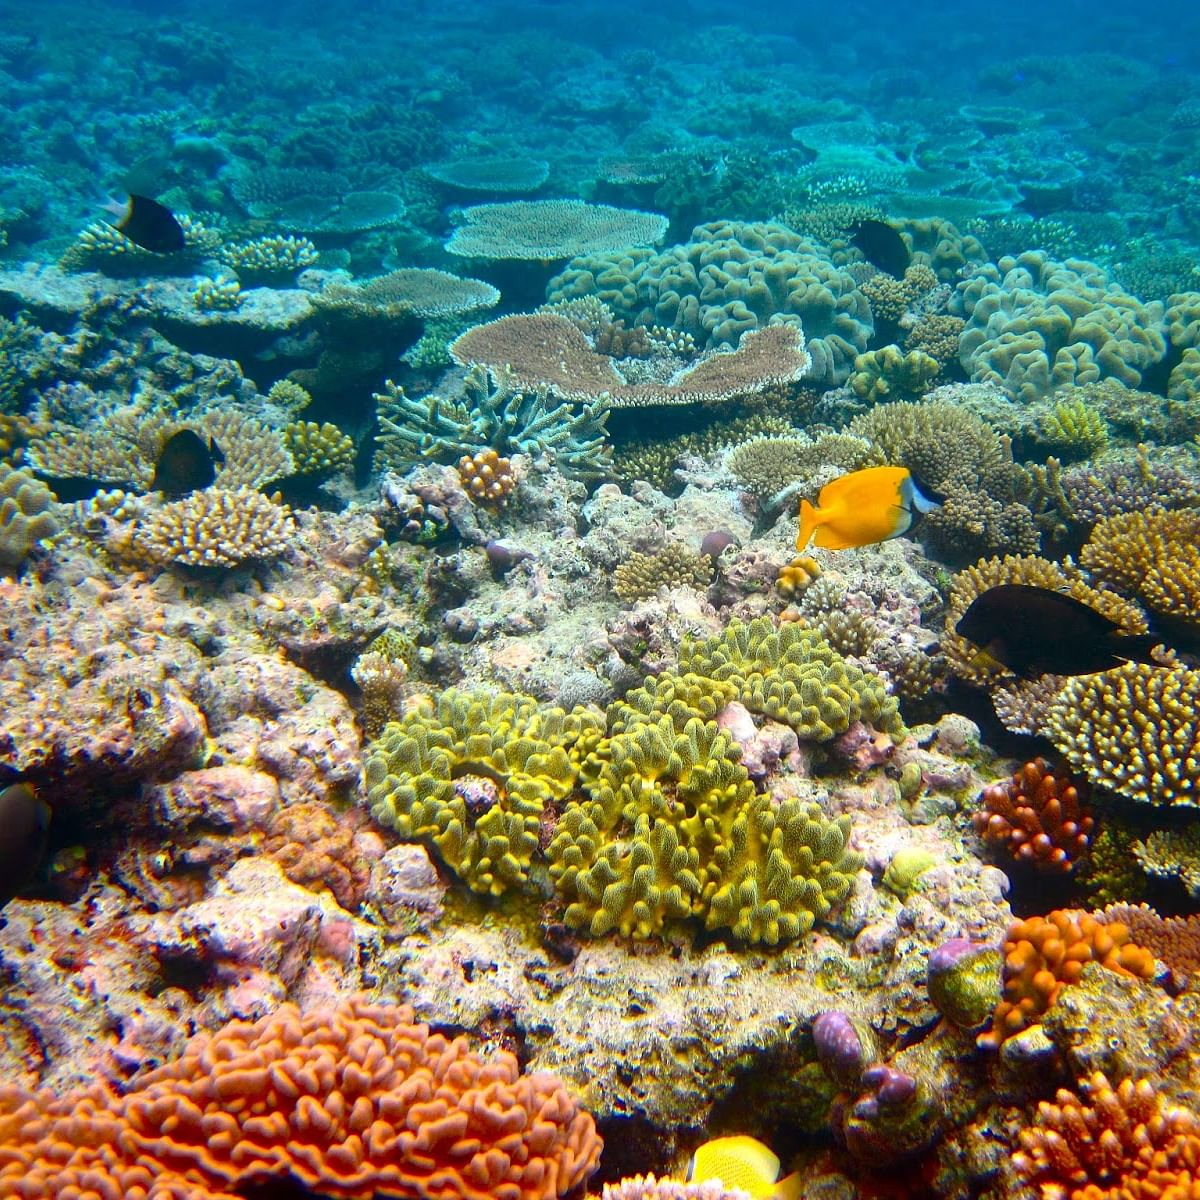 New disease hits coral reefs